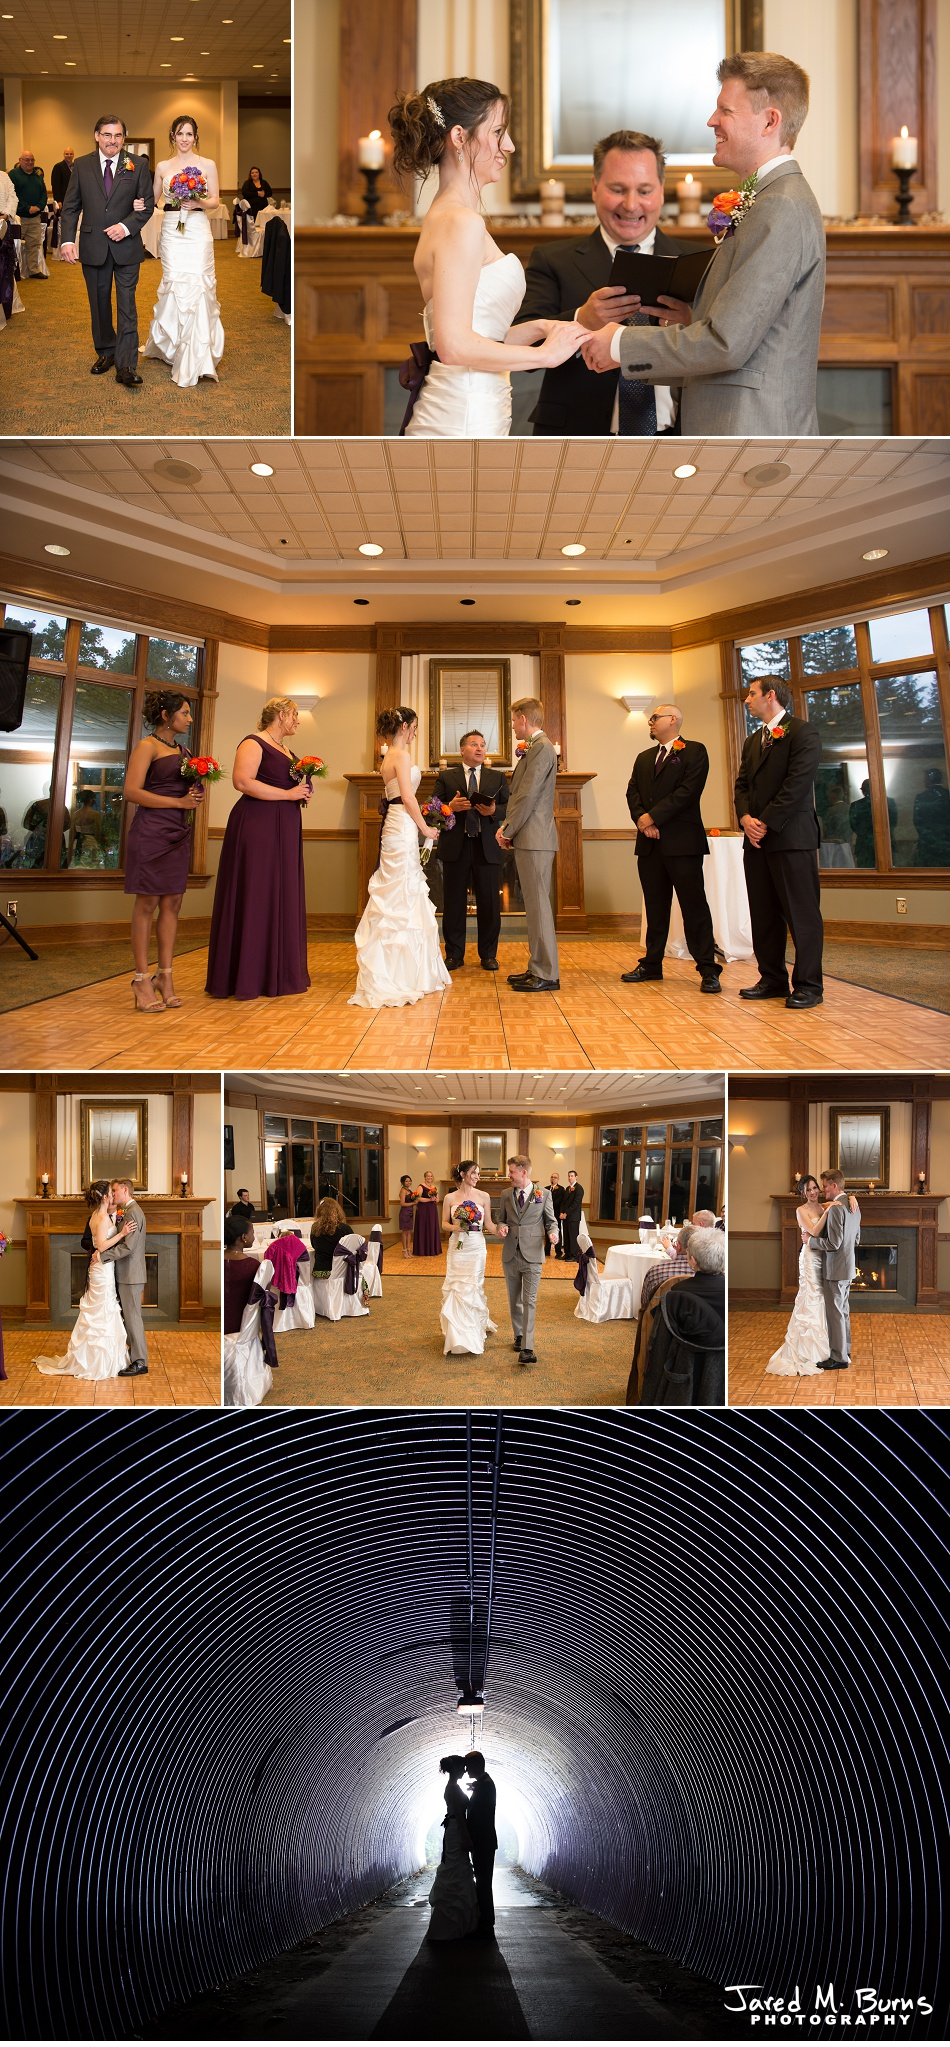 Kyle & Stephanie - Echo Falls and Washington Ferry Wedding Photographer - Jared M. Burns Photography 7